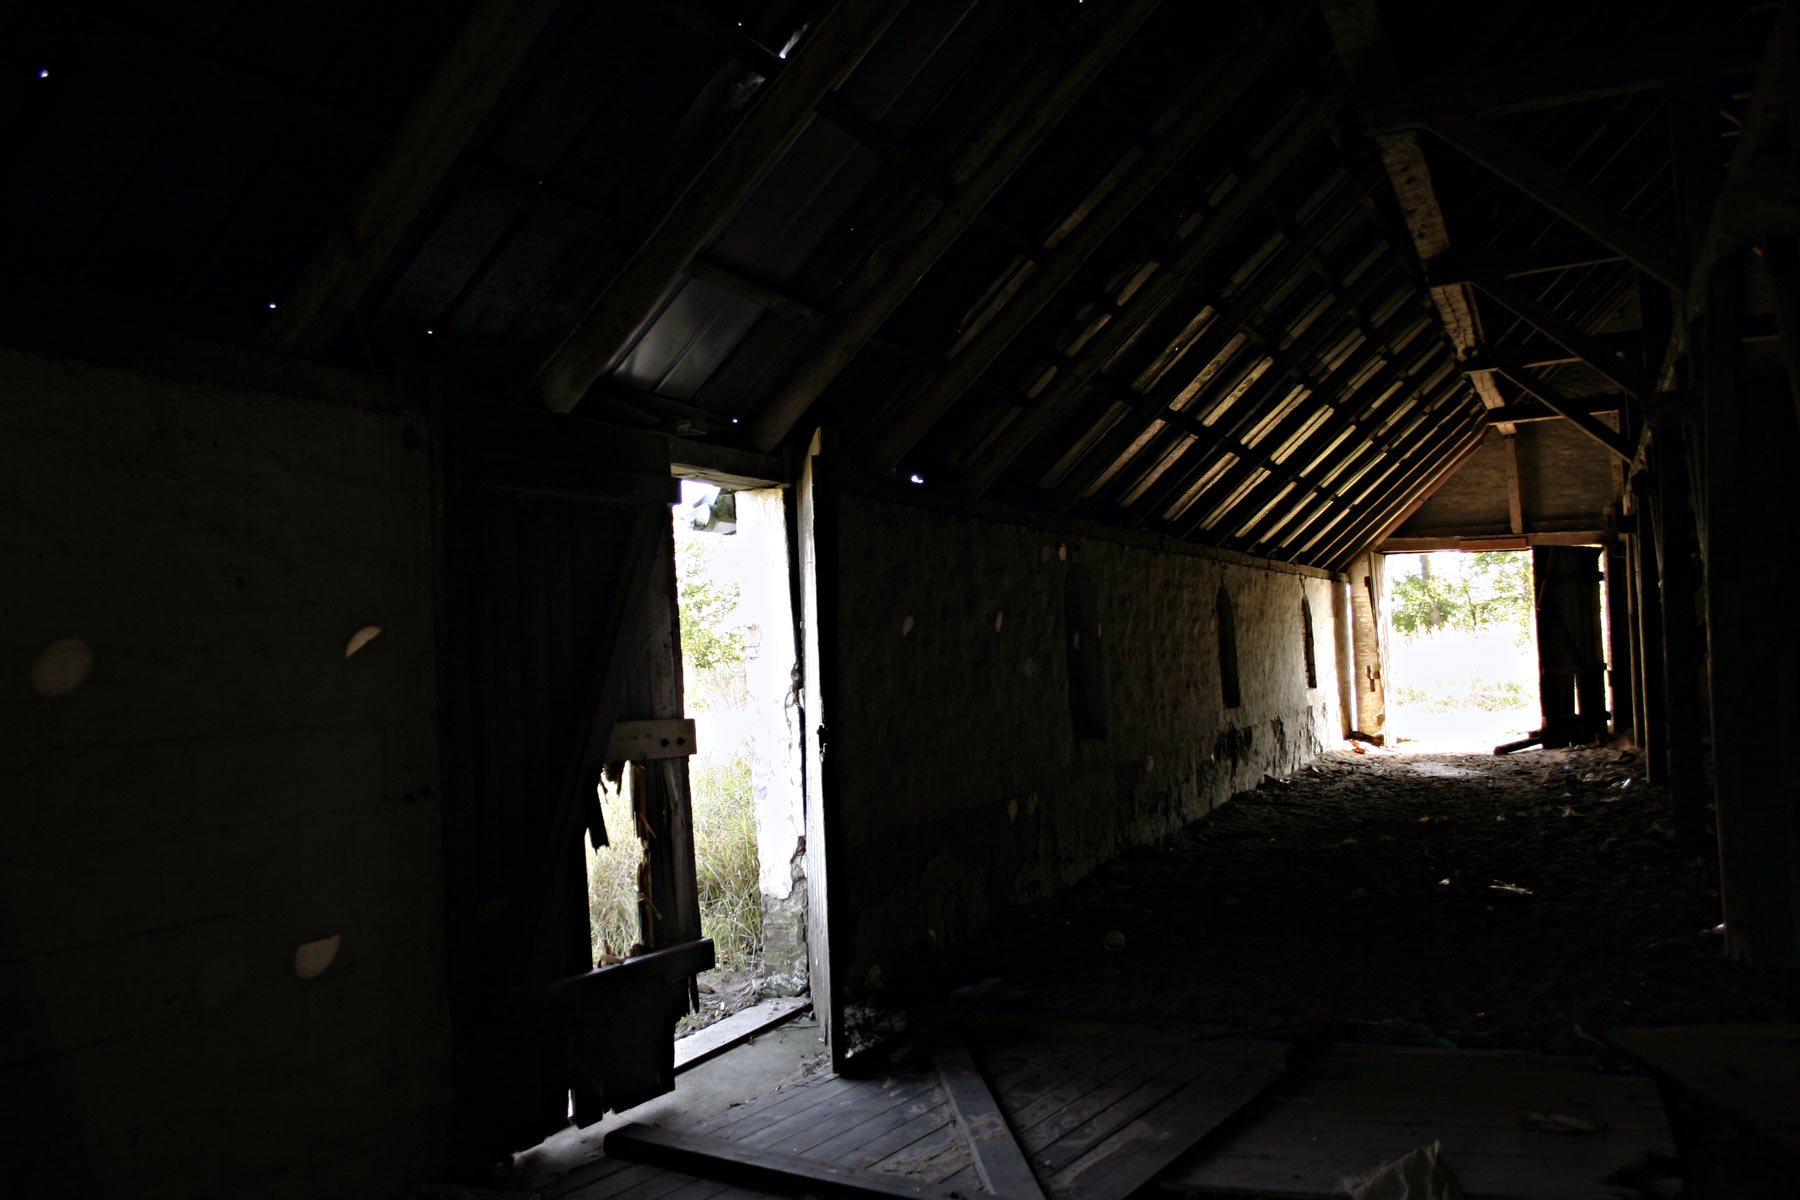 Abandoned house, Abandoned, Broken, Building, Dark, HQ Photo